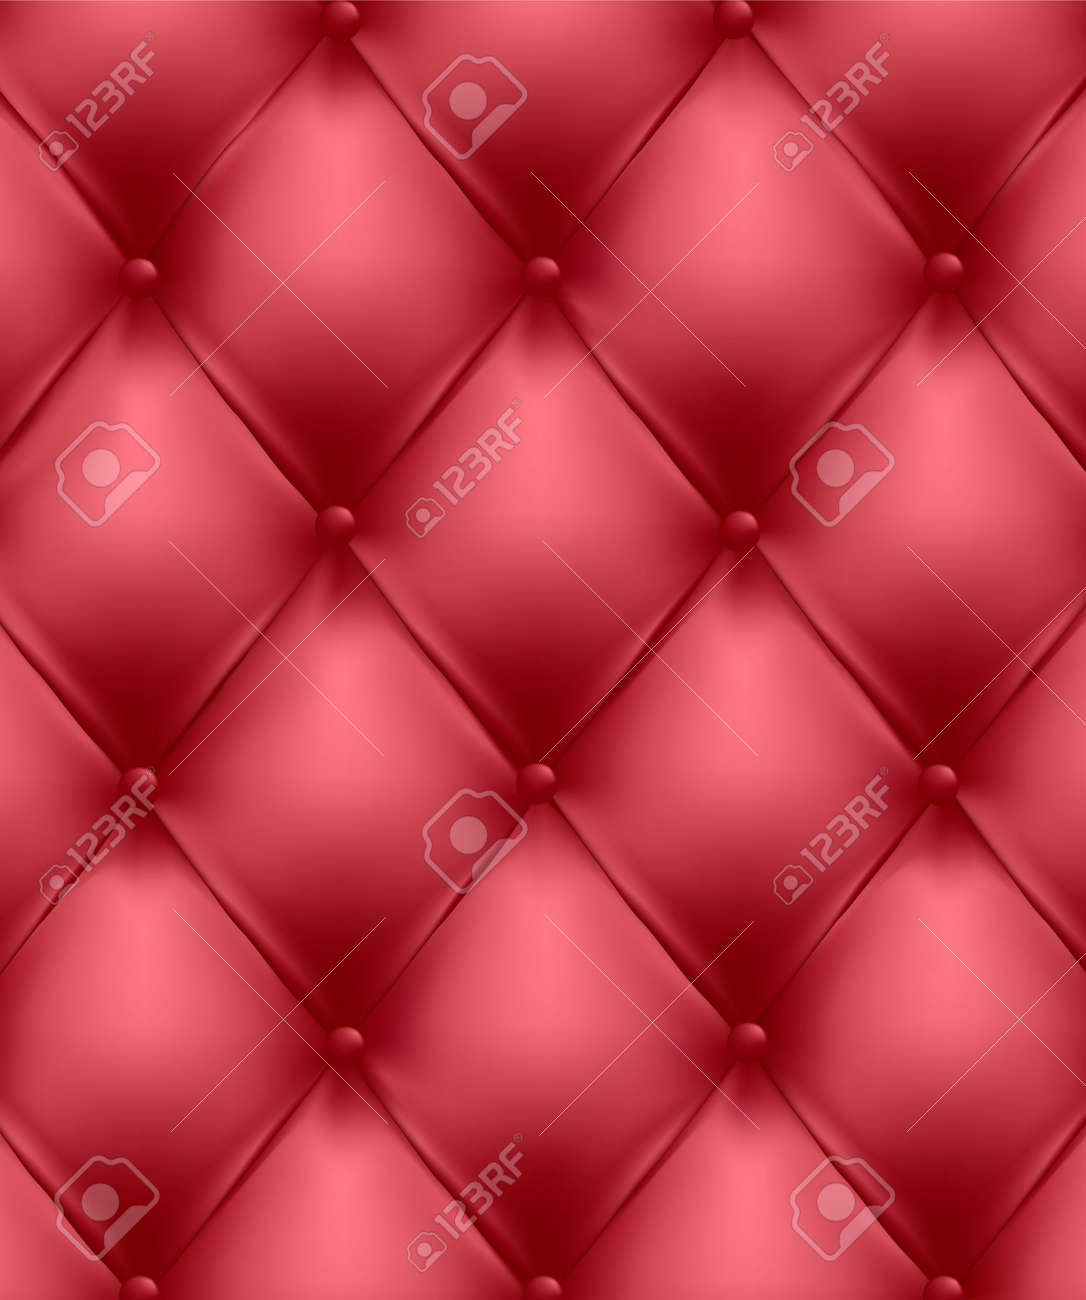 Red button-tufted leather background. Vector illustration. Stock Vector - 8898355